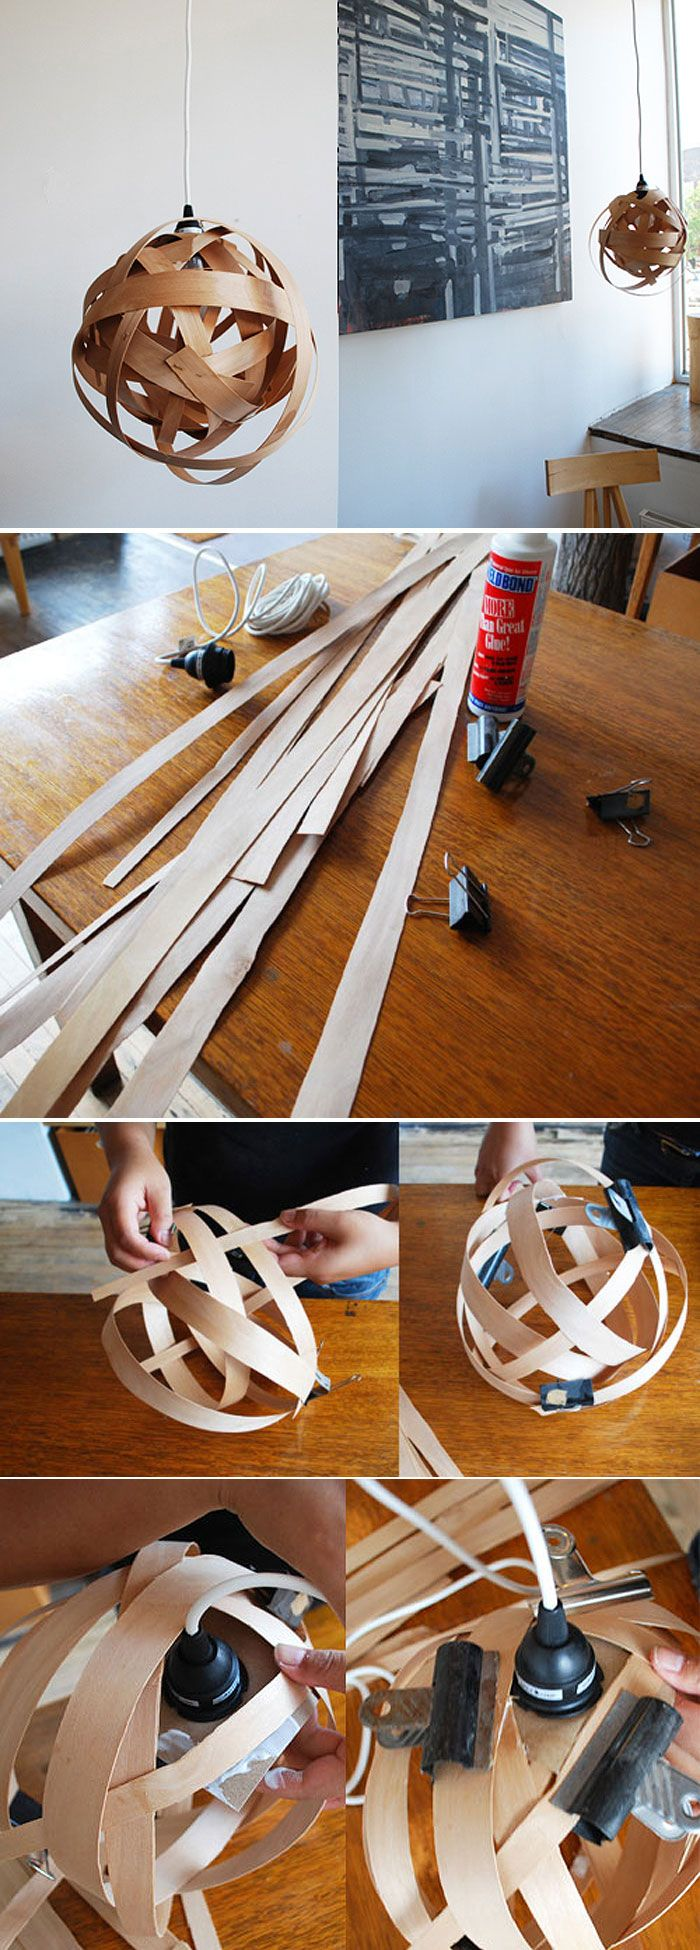 DIY - Make your own wood veneer pendant lighting using wood veneer strips, some glue, bull dog clips to hold them dry and an IKEA Hemma light/cord by Bookhou. #bestofdiy